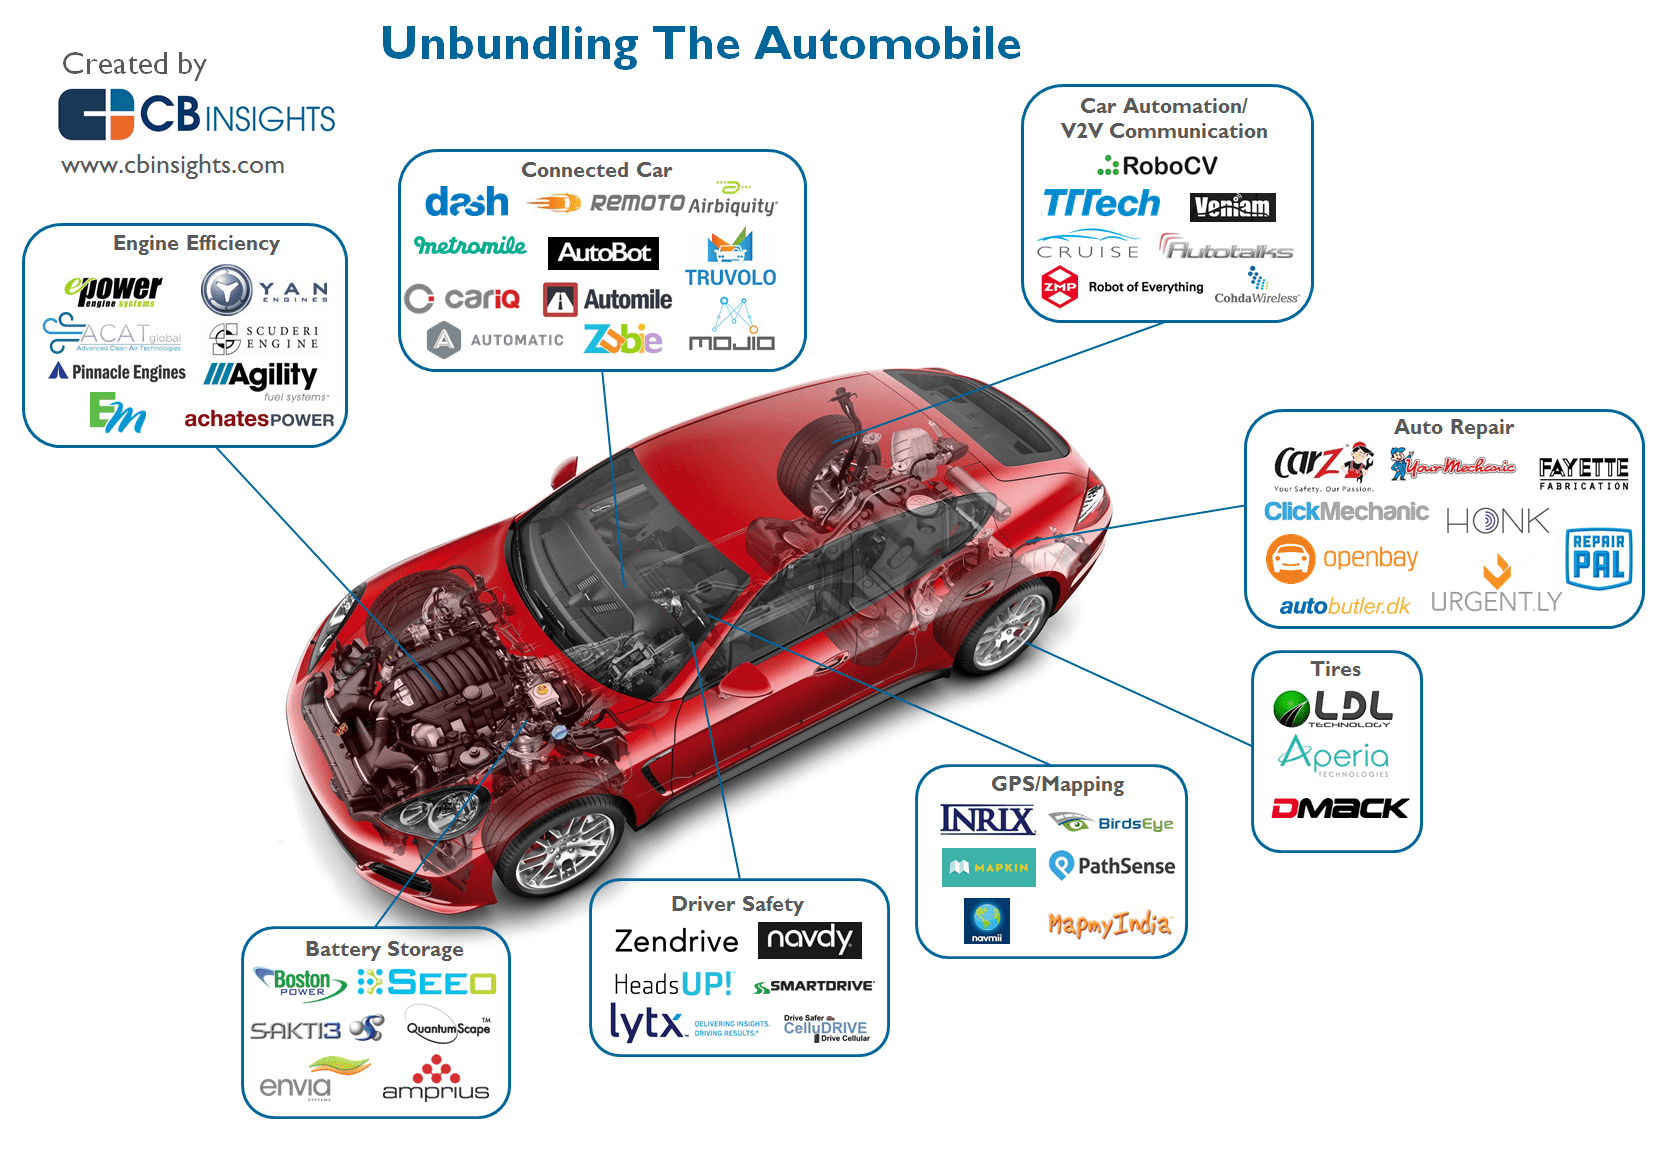 Startups Unbundling The Car And Disrupting The Automobile